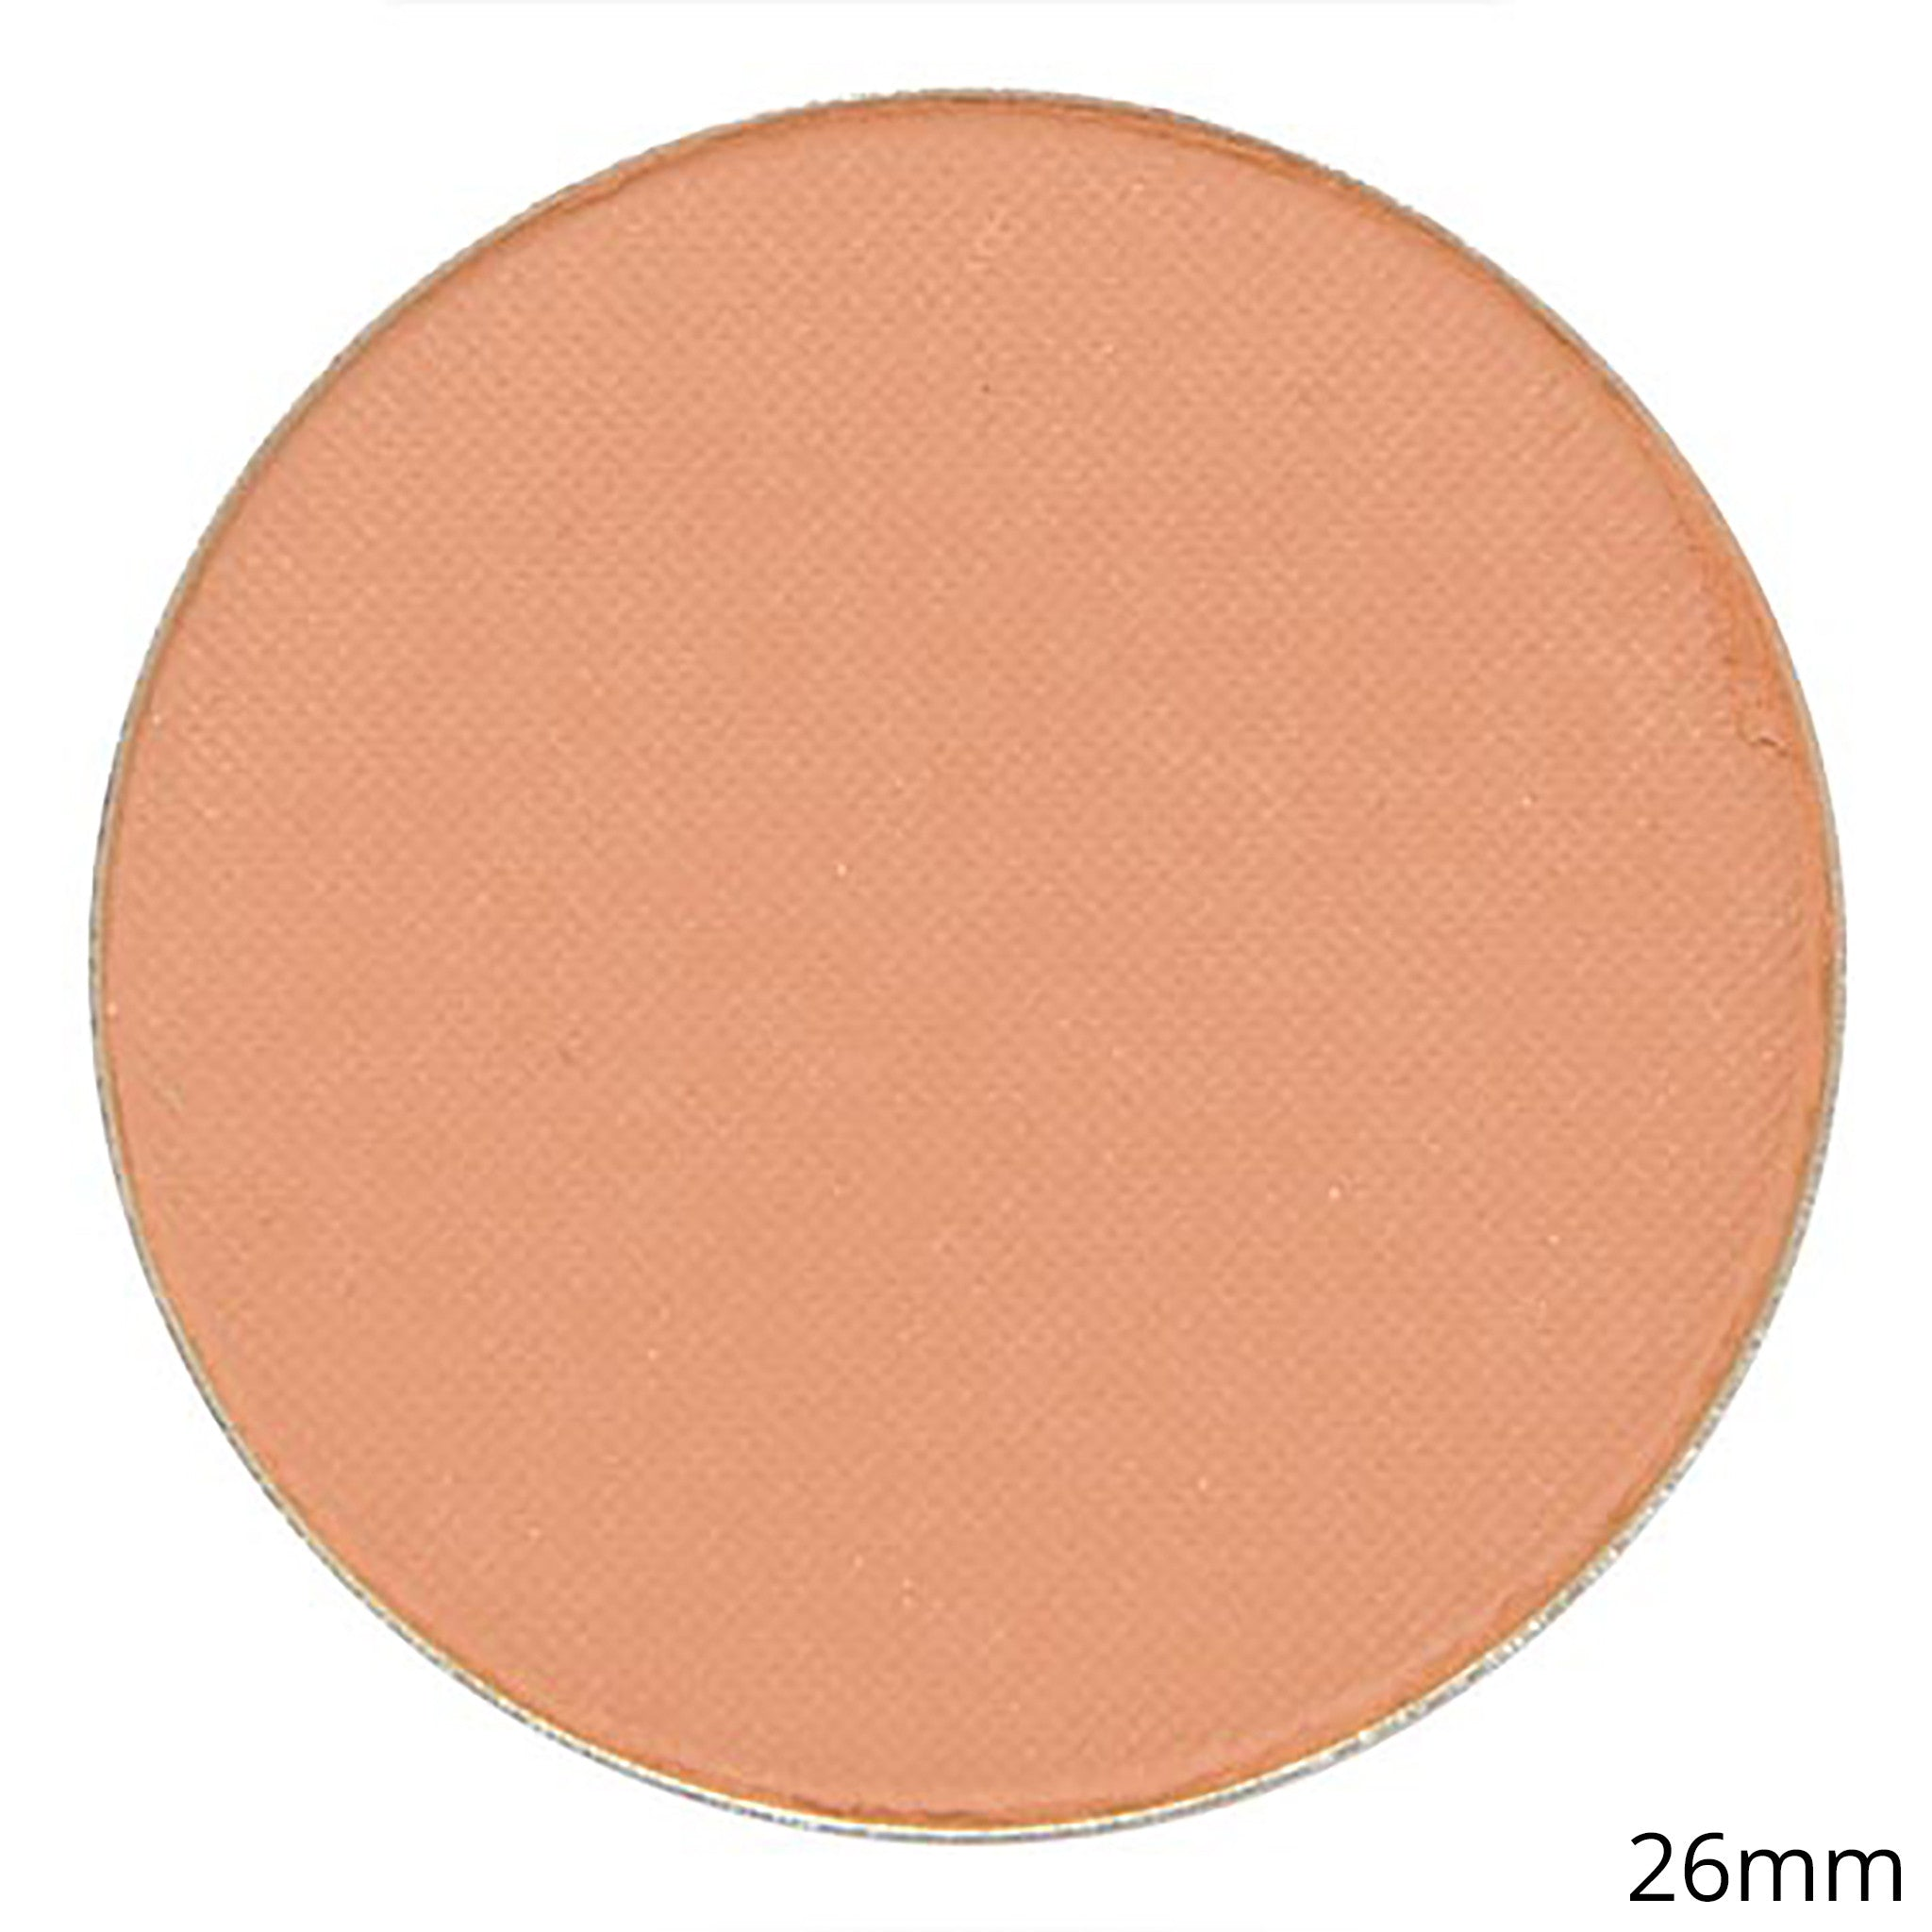 Single Eyeshadow - Oatmeal Tan Hot Pot by Coastal Scents